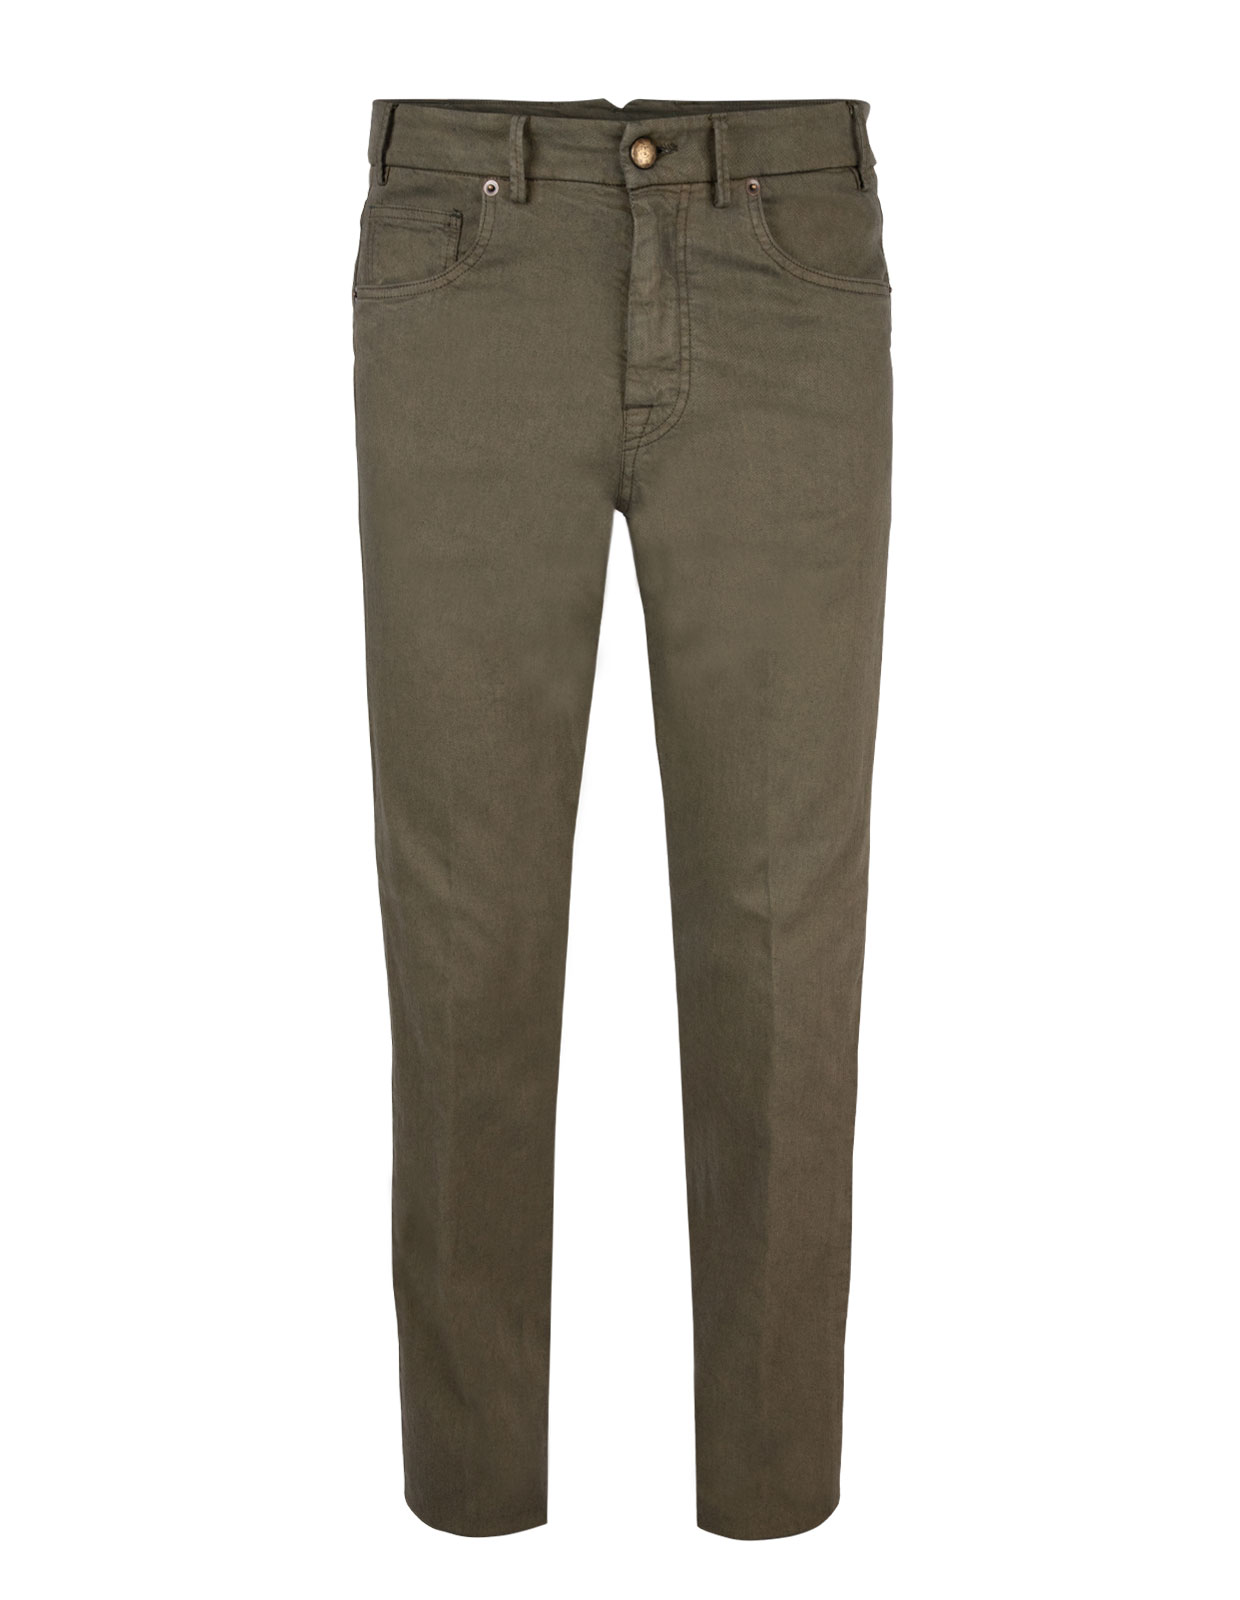 Barolo 5-Pocket Comfort Slim Stretch Militare